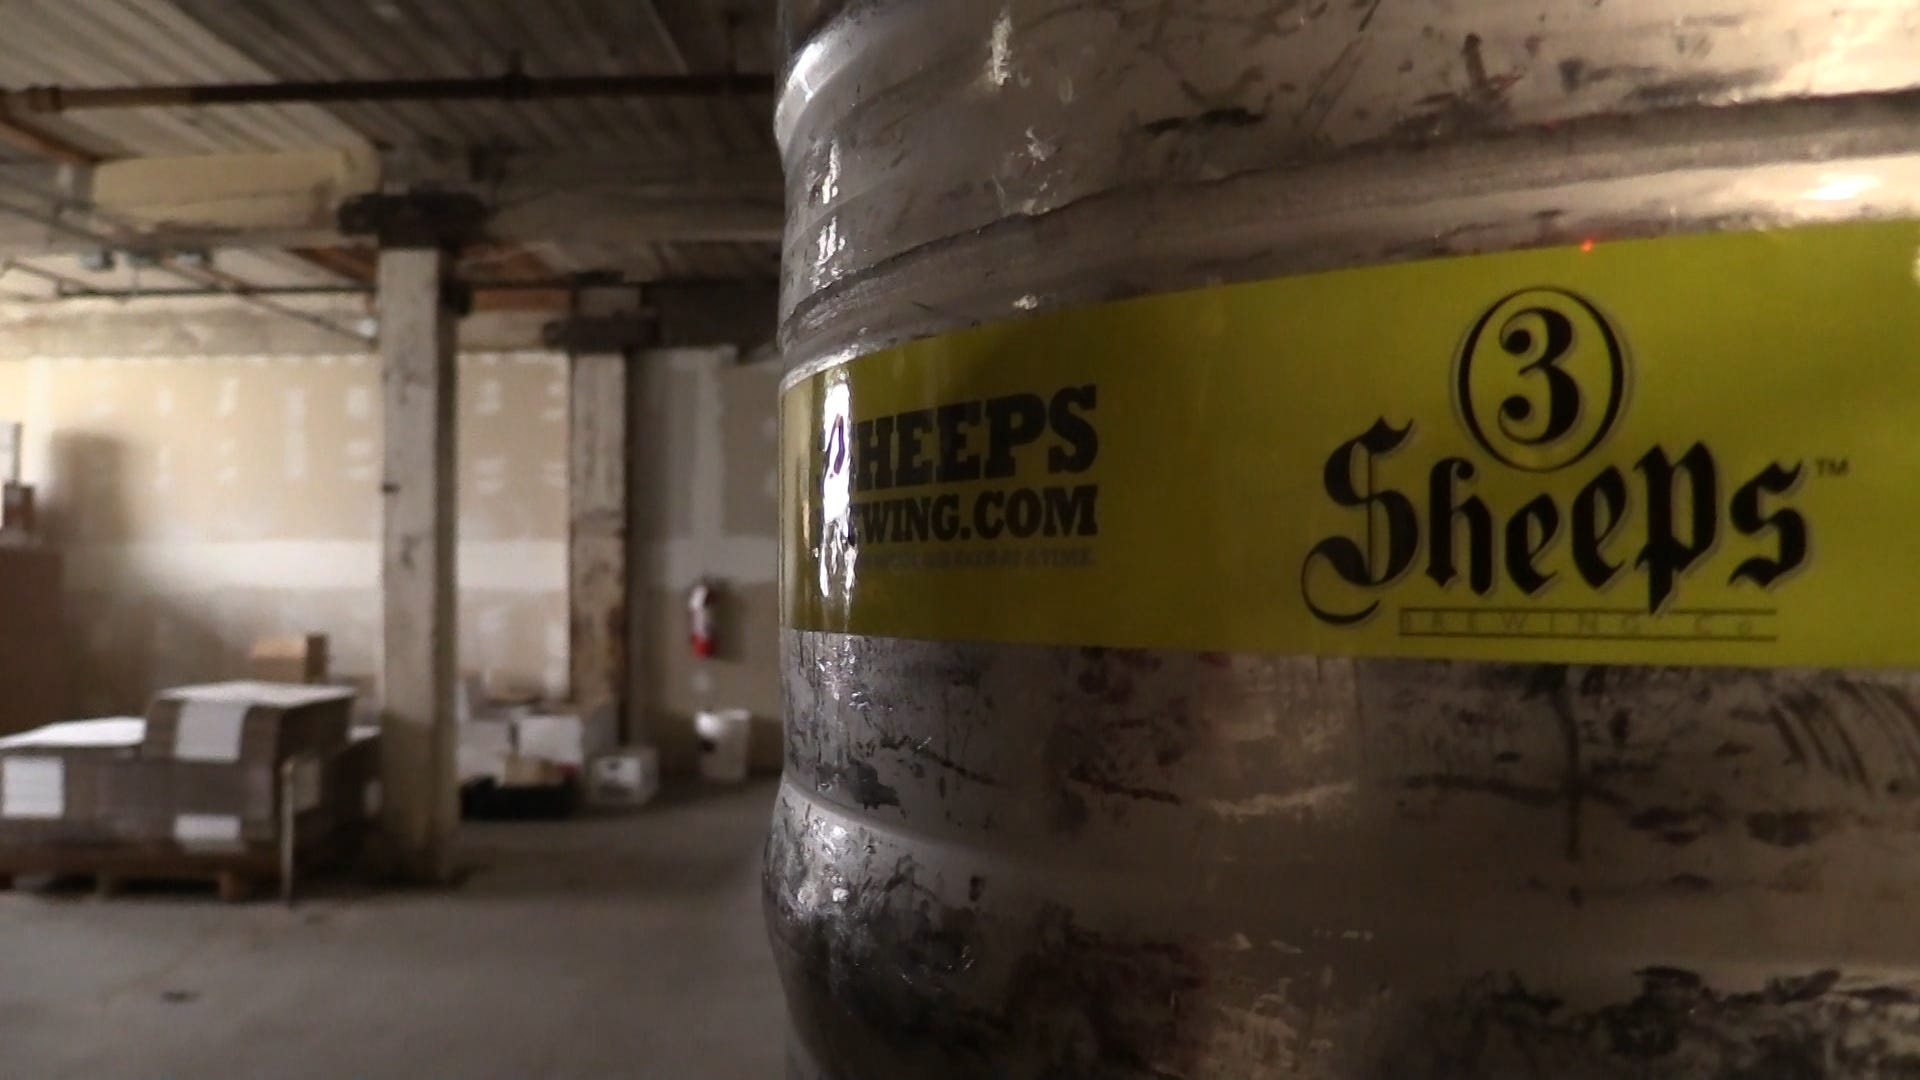 WIsBrewView: Behind the scenes at 3 Sheeps Brewing Co.